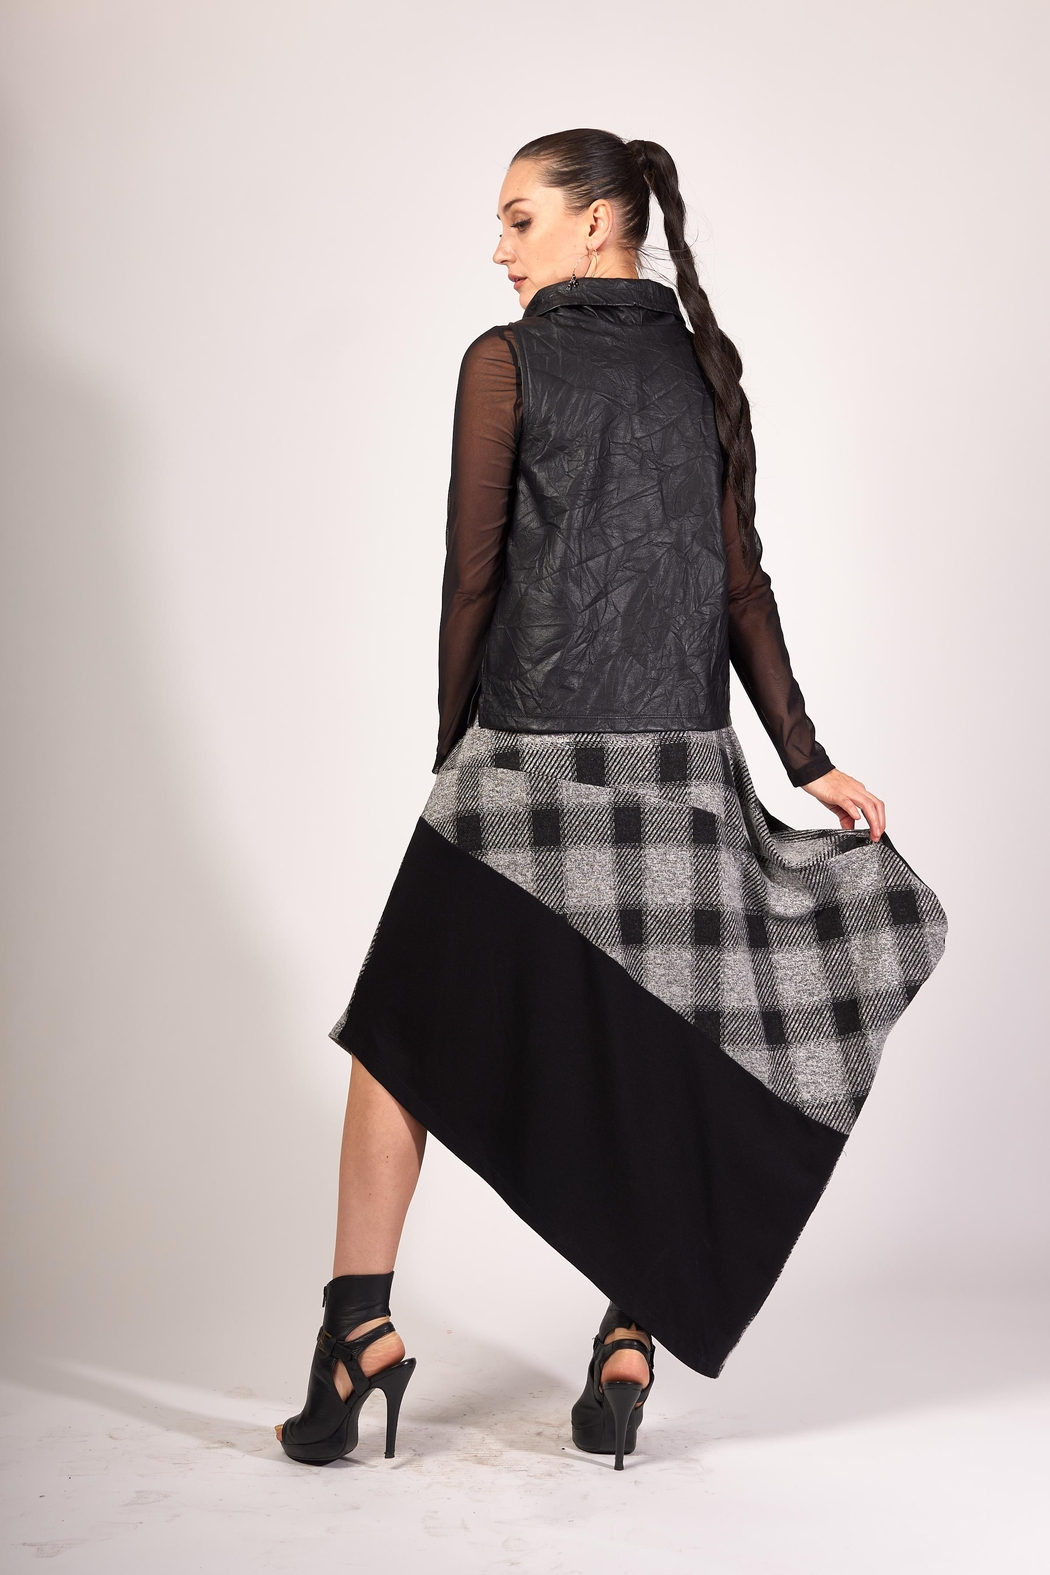 Matti Mamane Asymmetrical Black And Checker Grey Skirt - Side Cropped Image